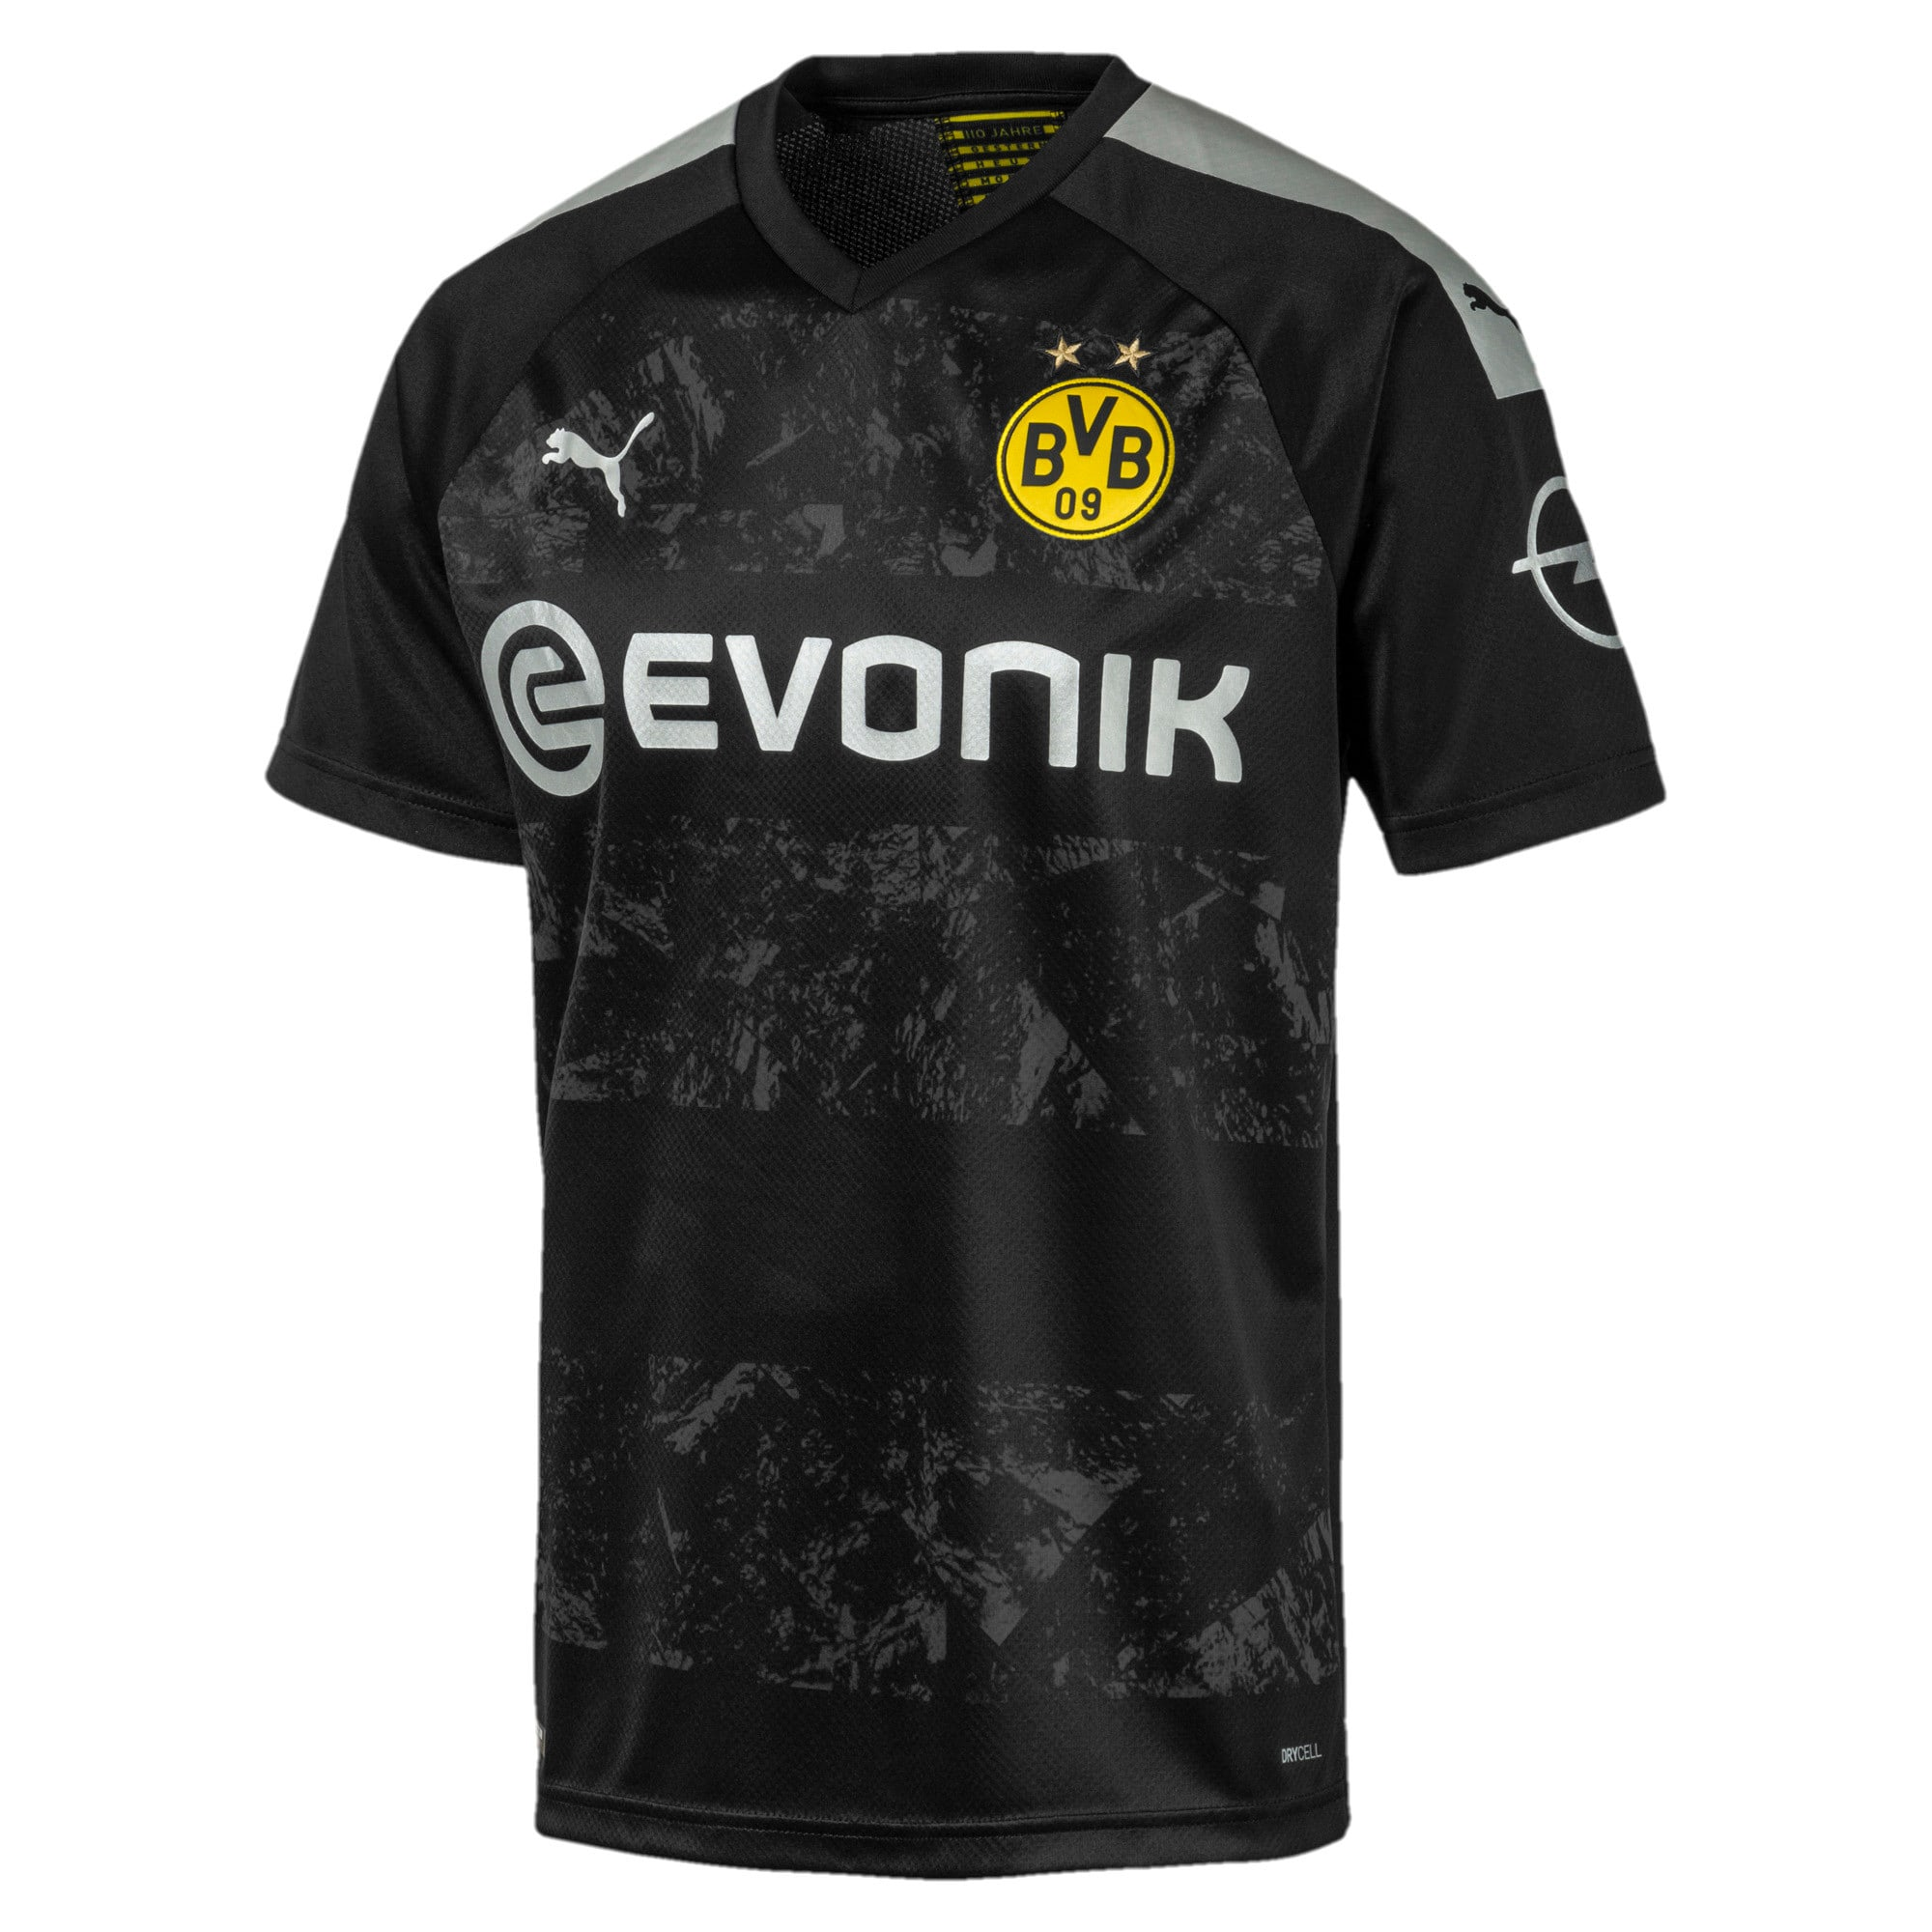 Thumbnail 1 of BVB Men's Away Replica Jersey, Puma Black, medium